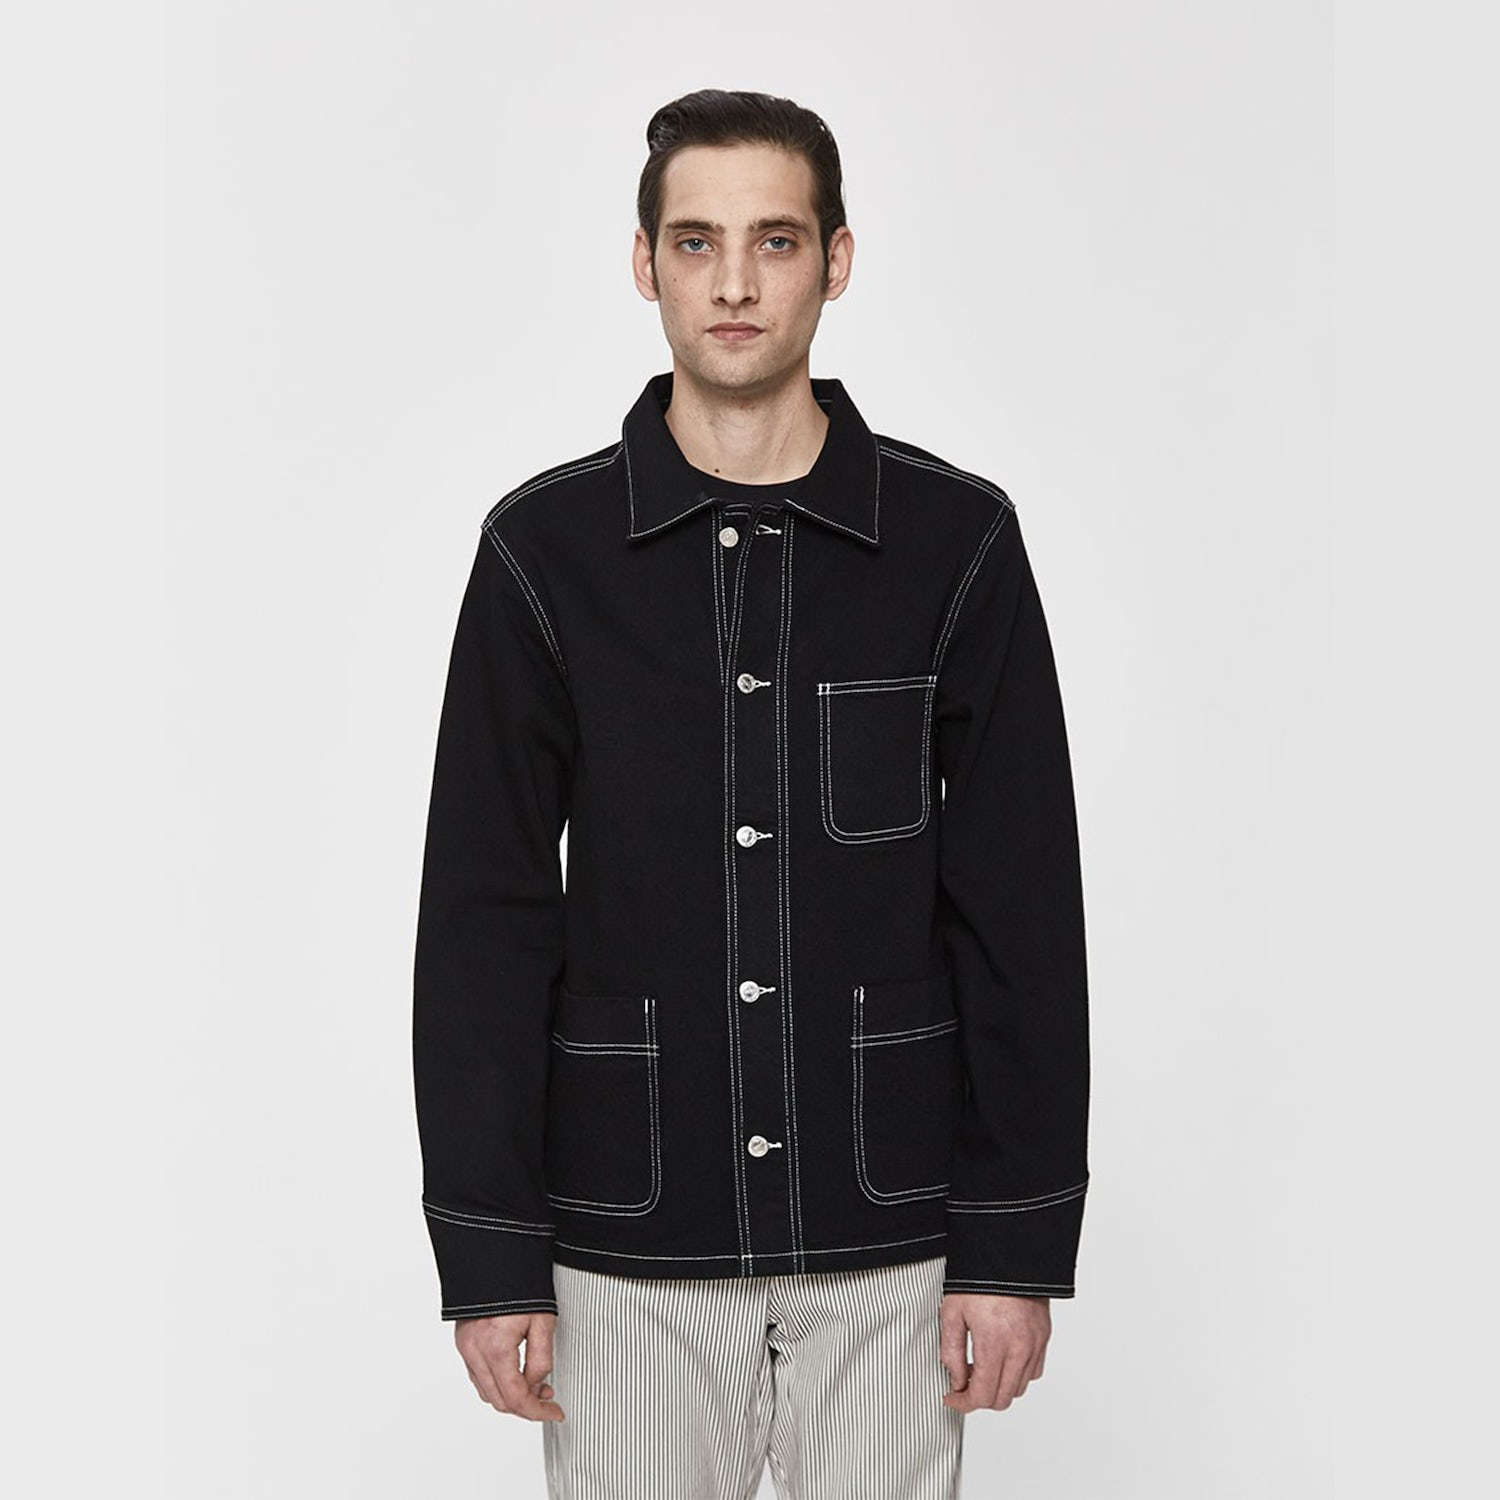 black stitched jacket